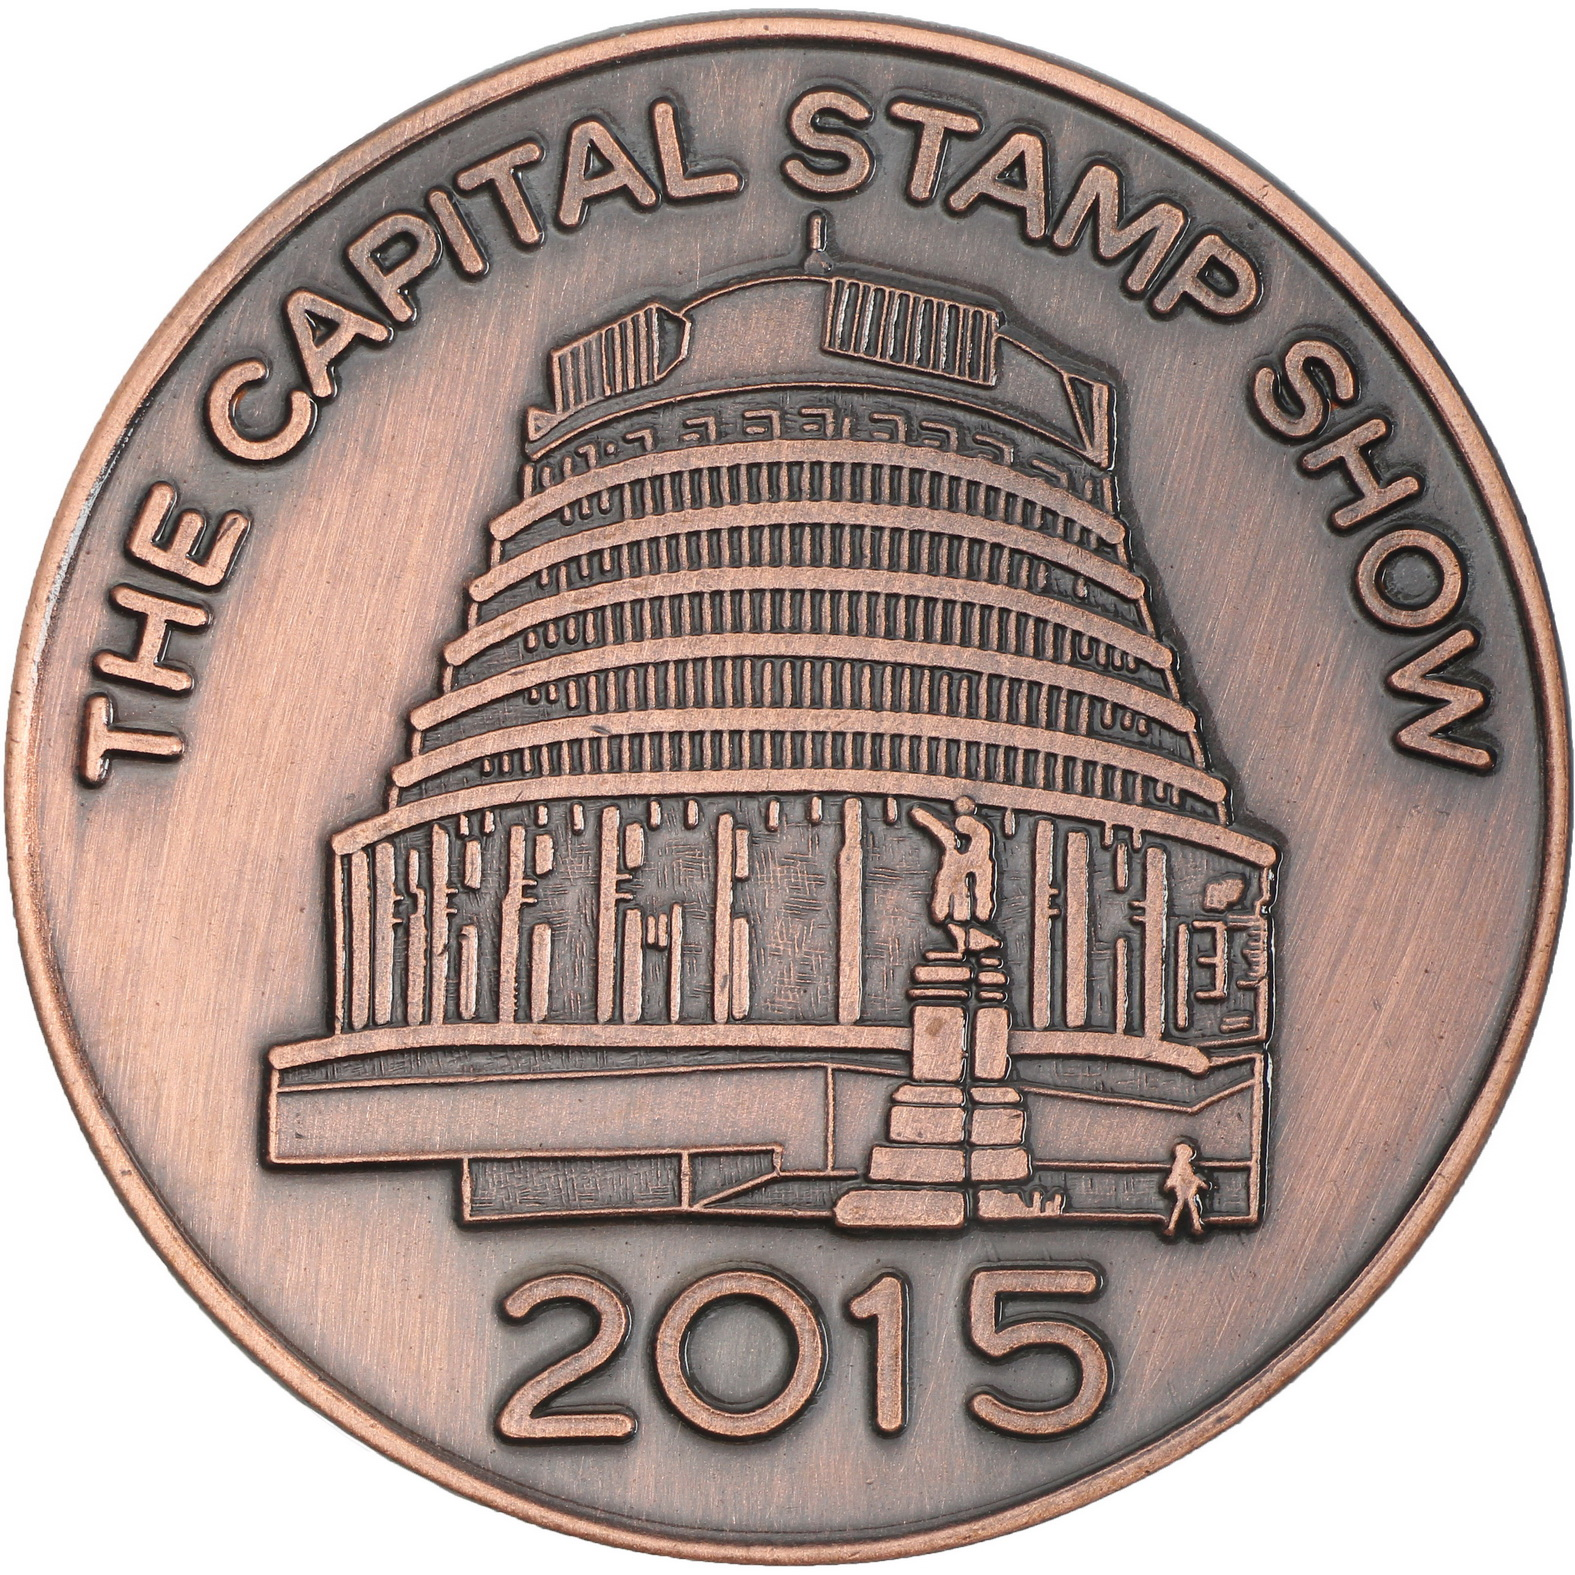 2015 Capital Stamp Show 462mm 27696g 1 Resize